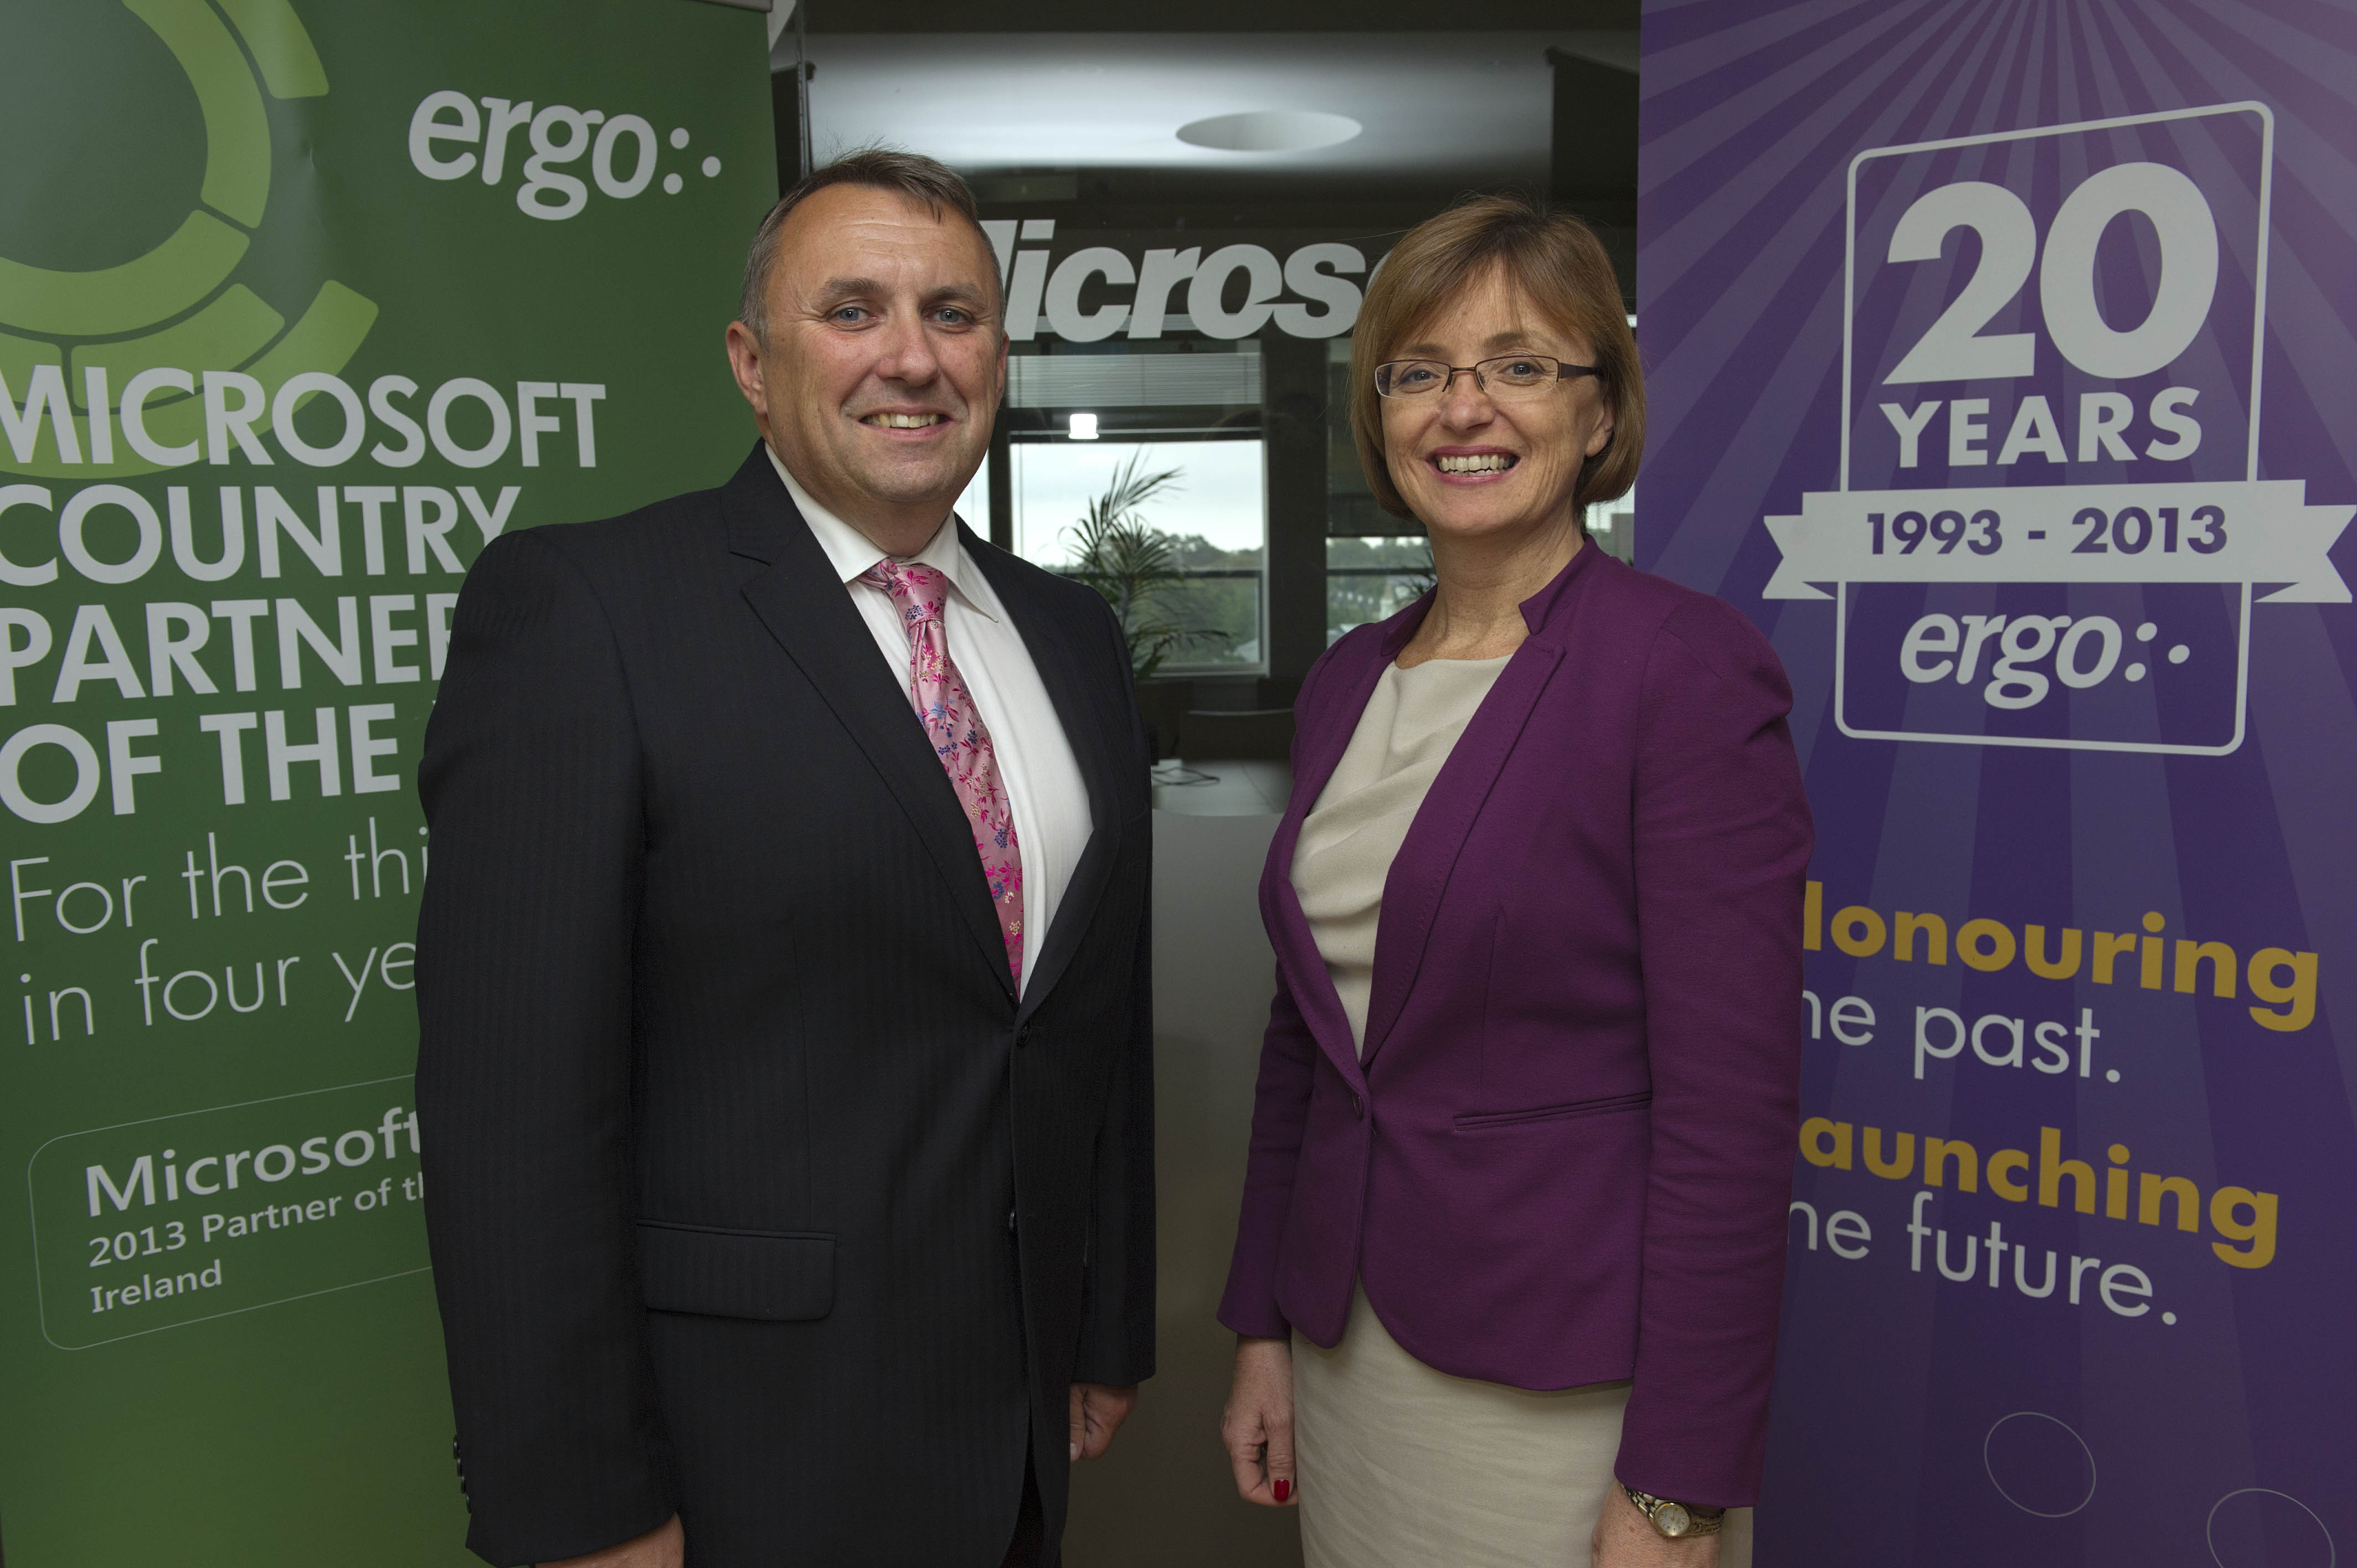 Ergo celebrate 20 Years in Business